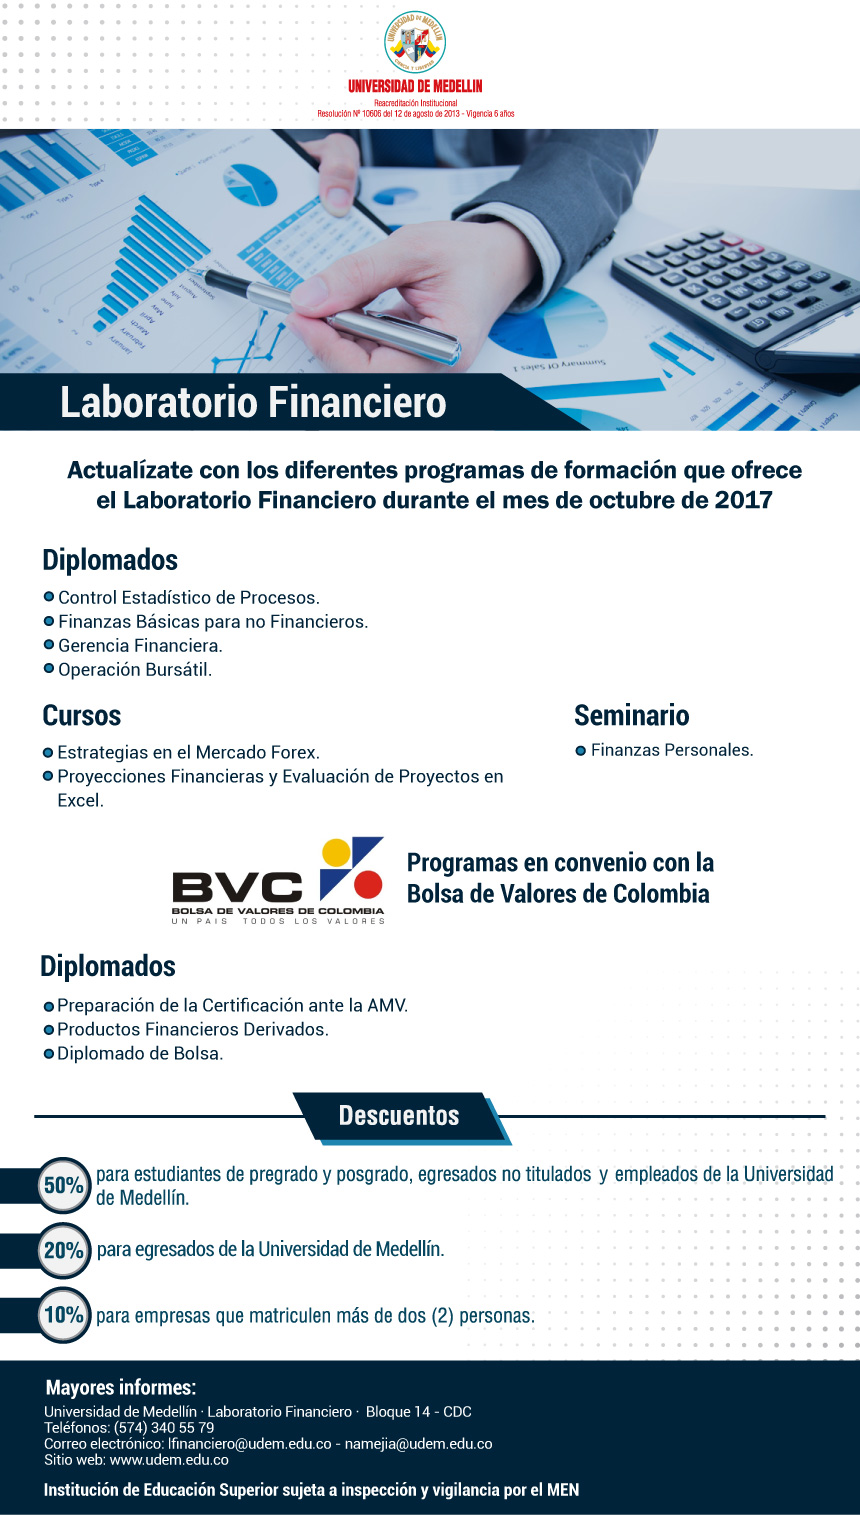 Laboratorio Financiero